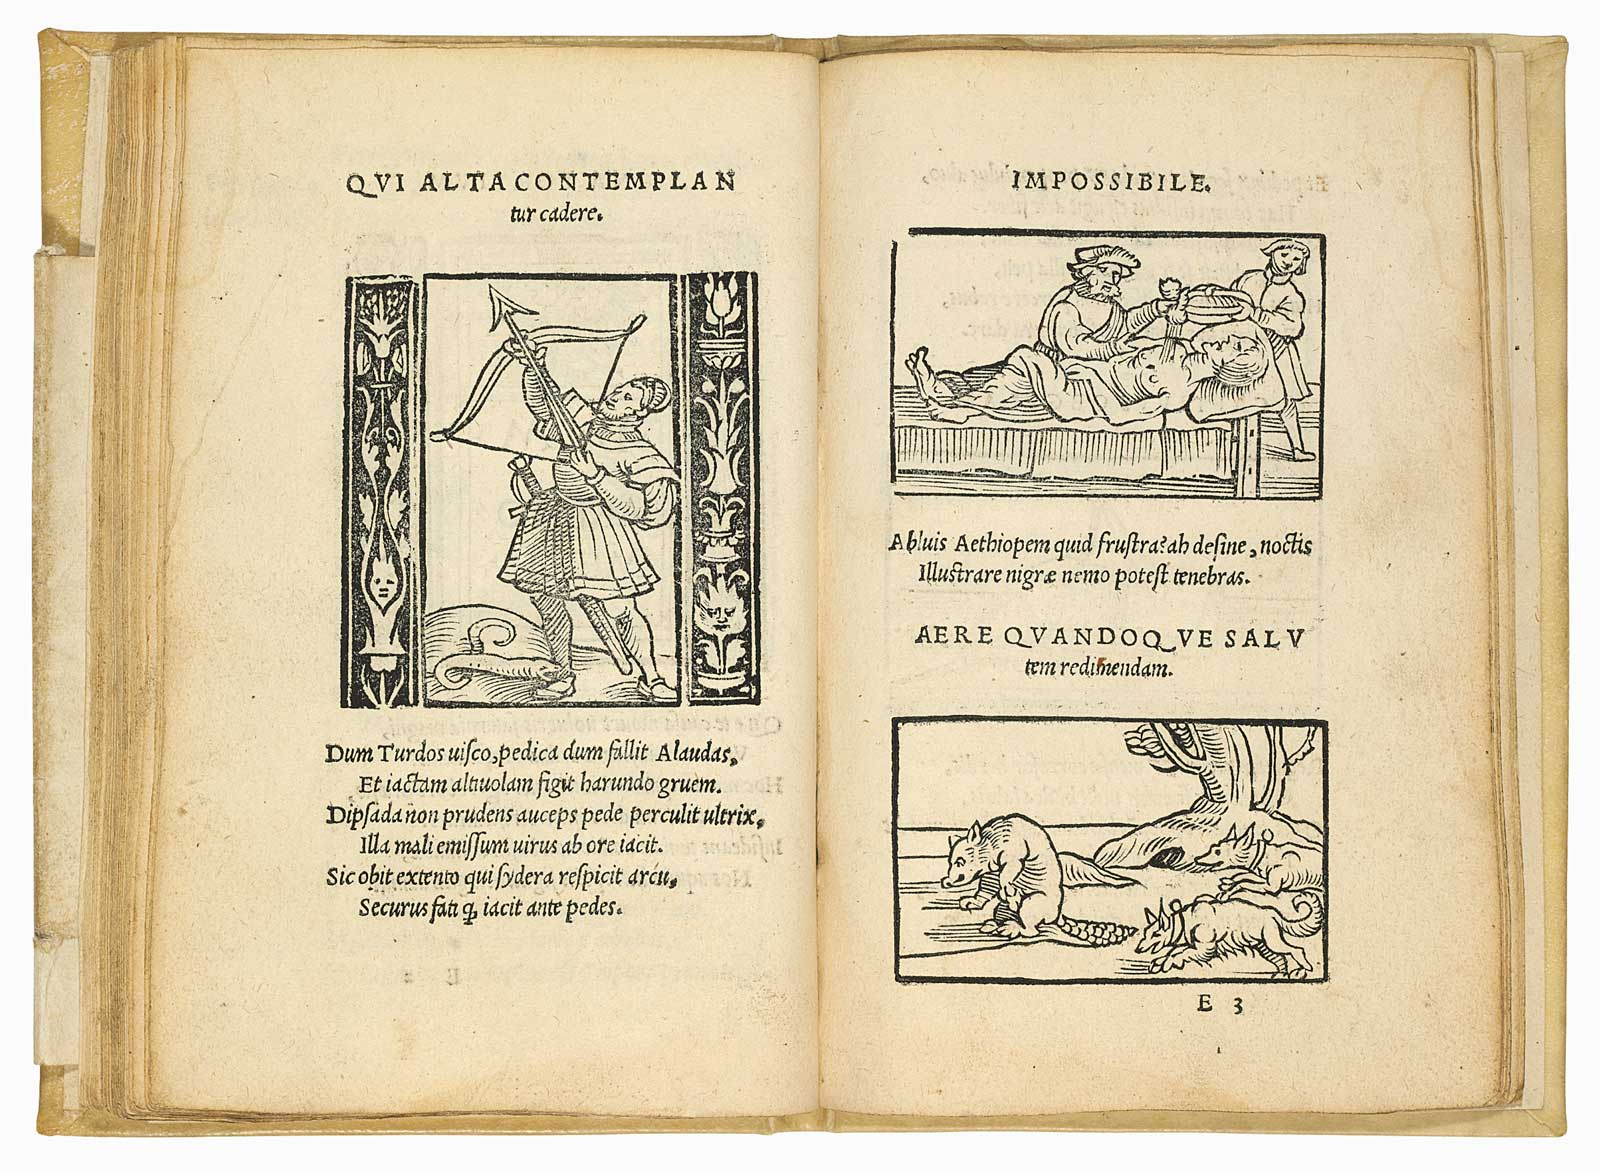 first ever emblem book, published in 1531